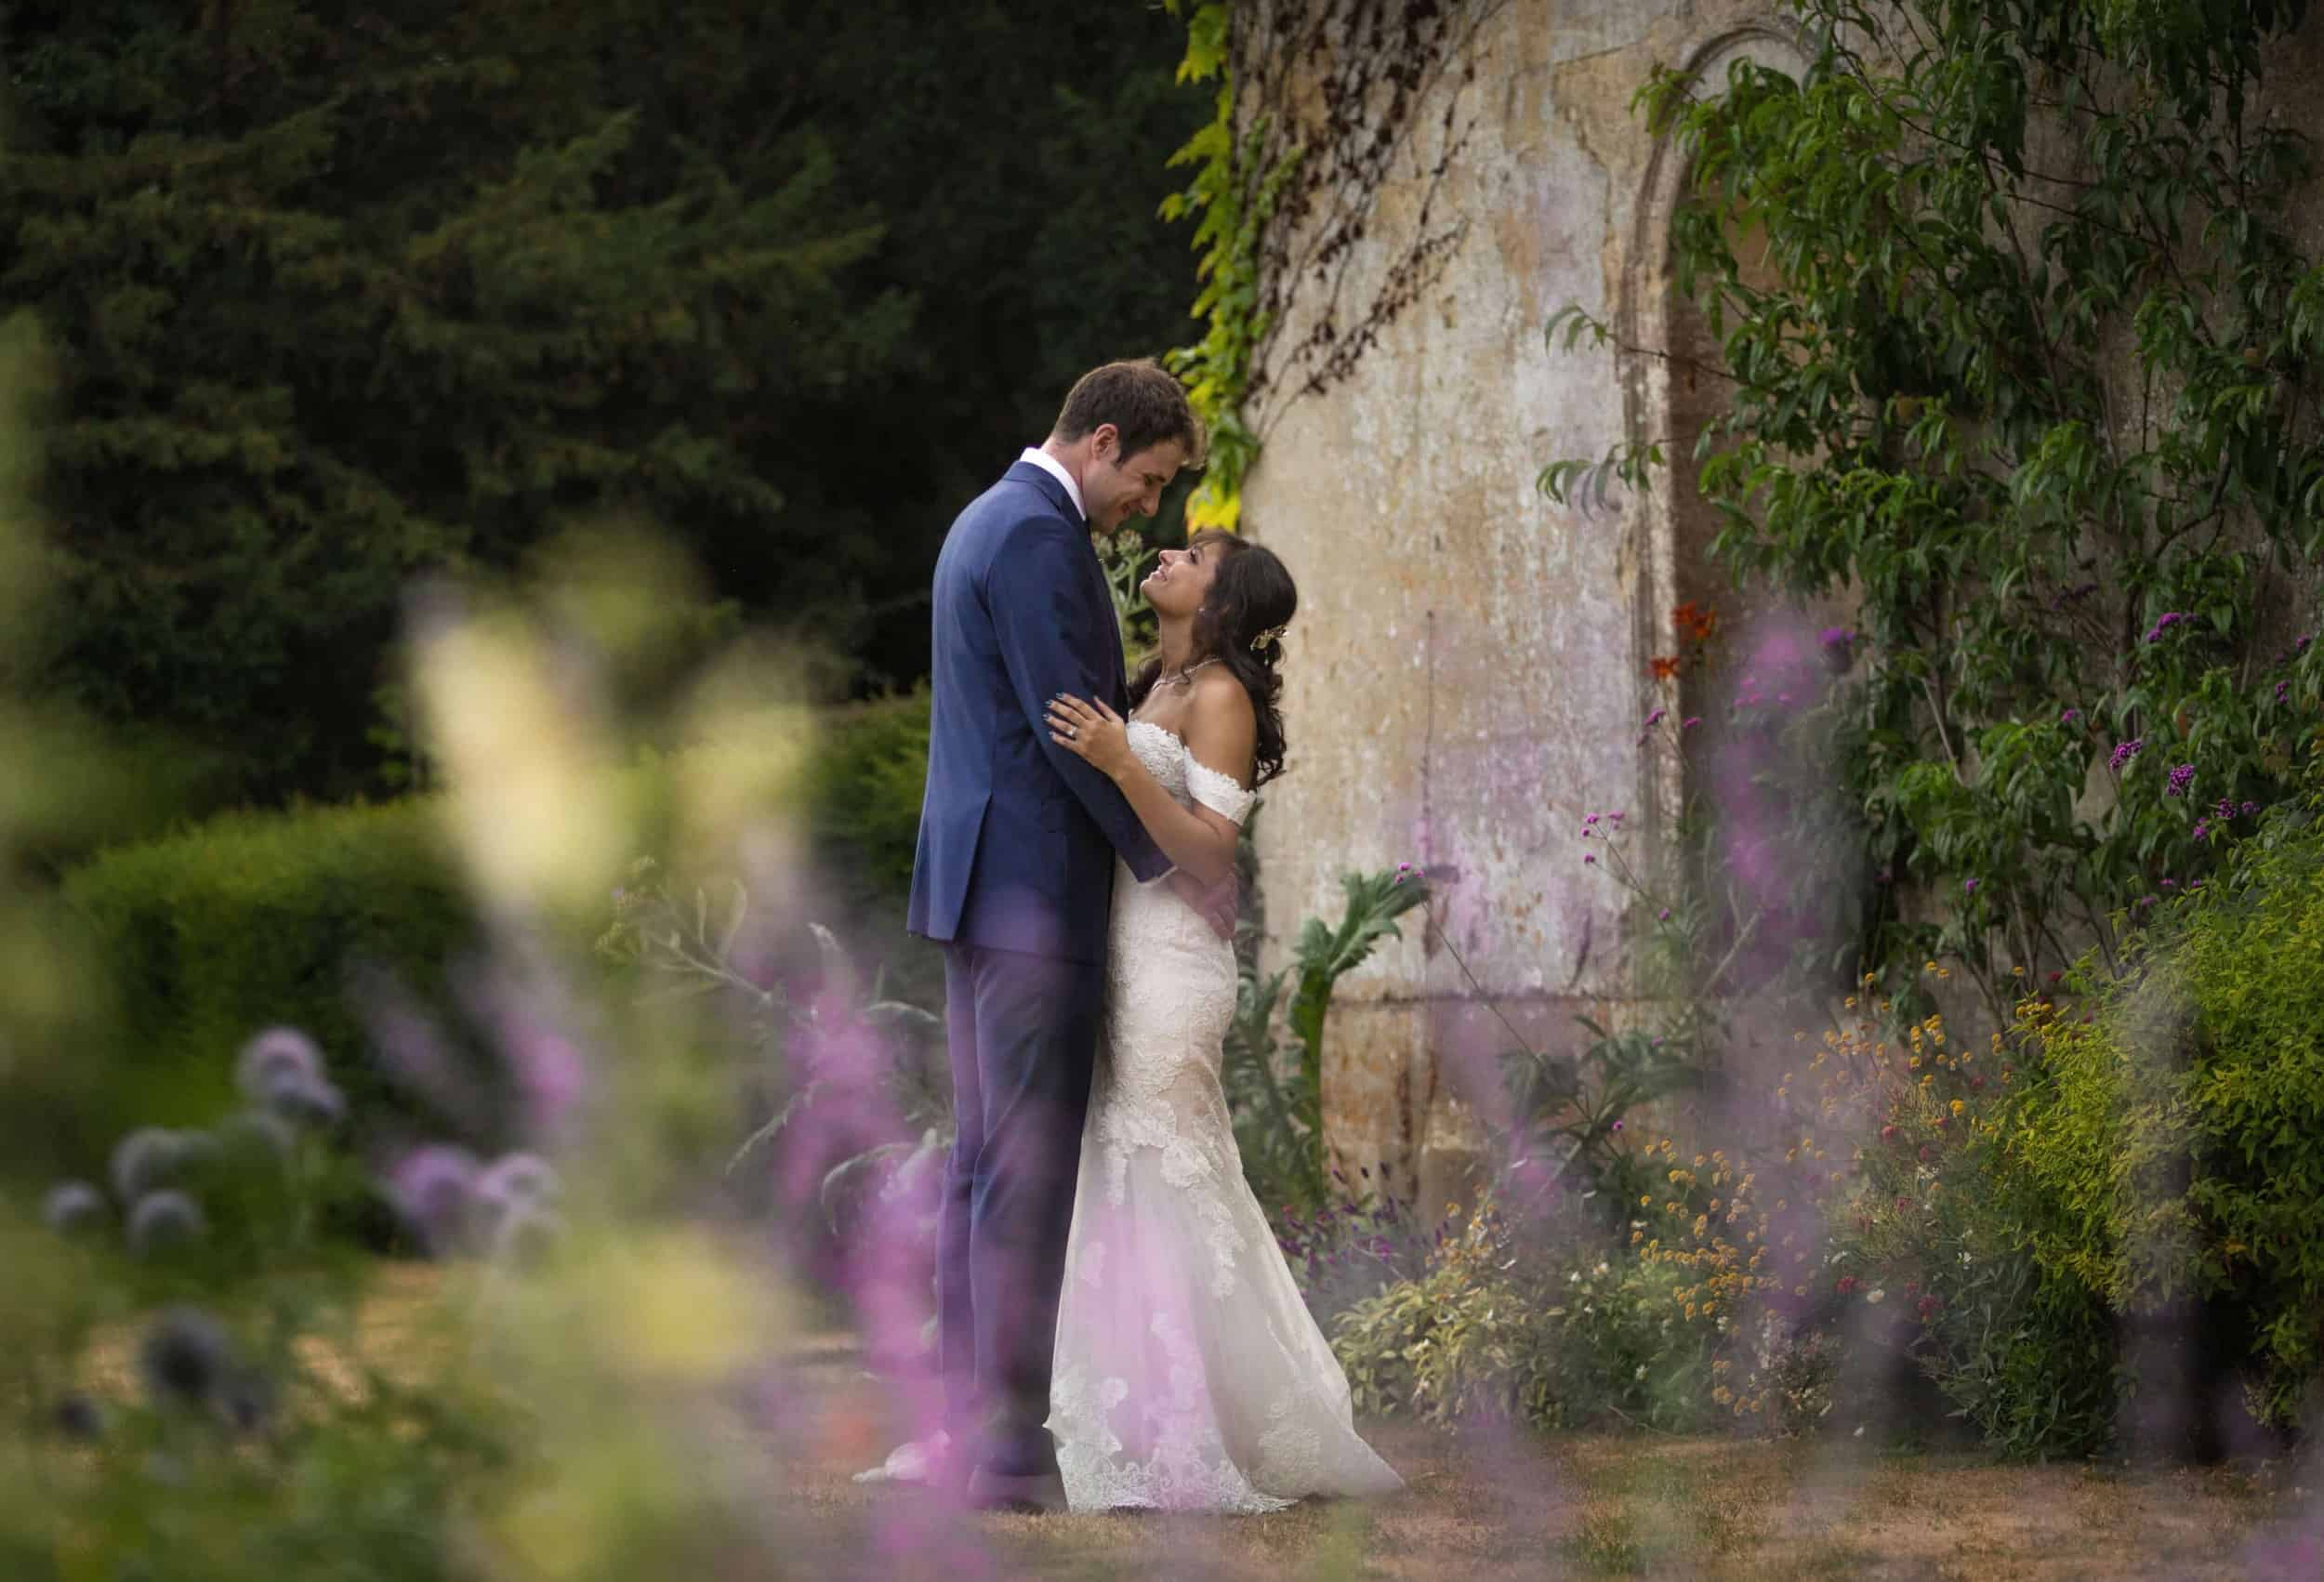 bride and groom in an embrace in the gardens of kirtlington park.